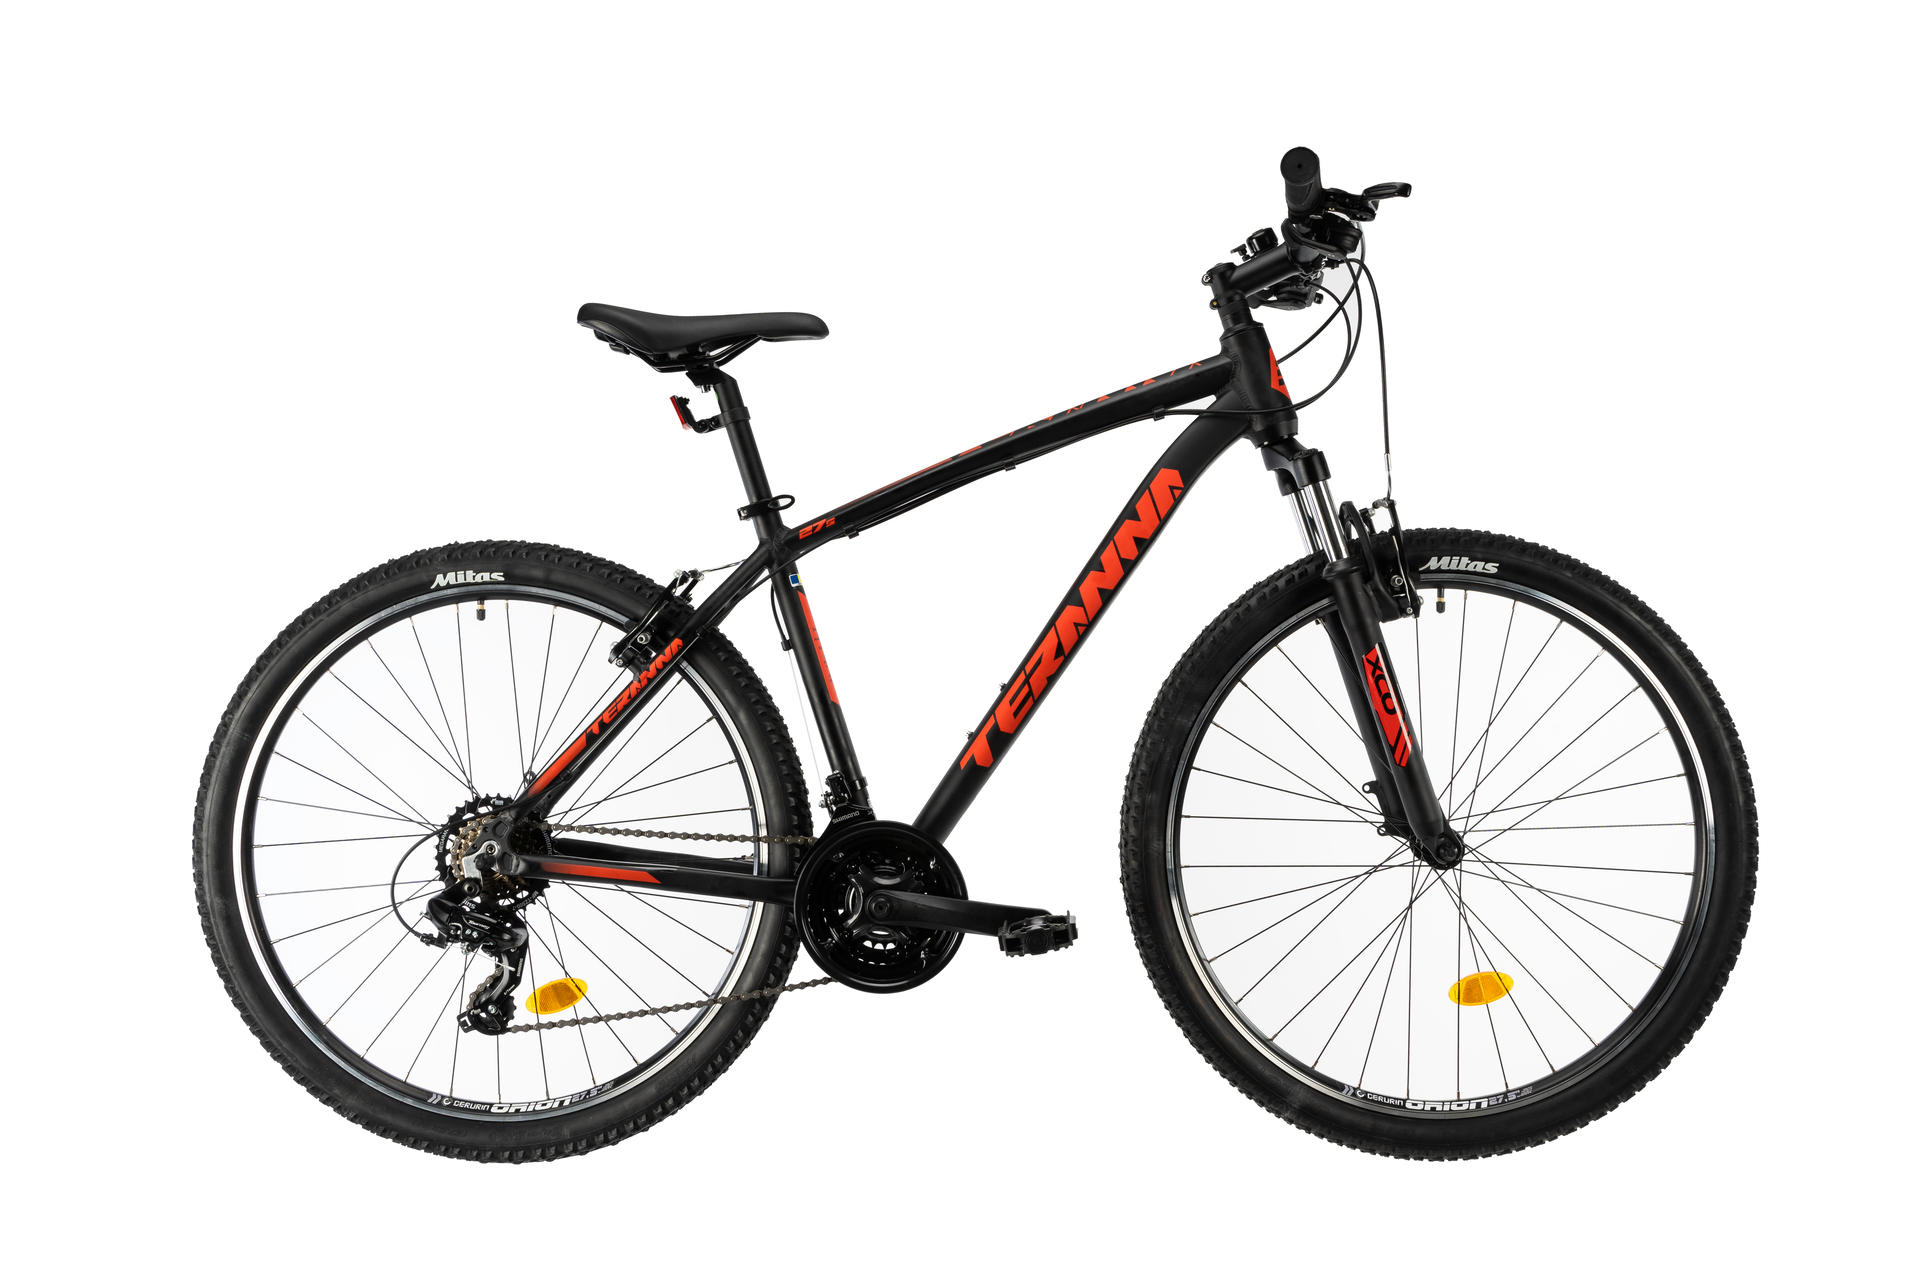 Mountain bike DHS 2723 Black 420mm